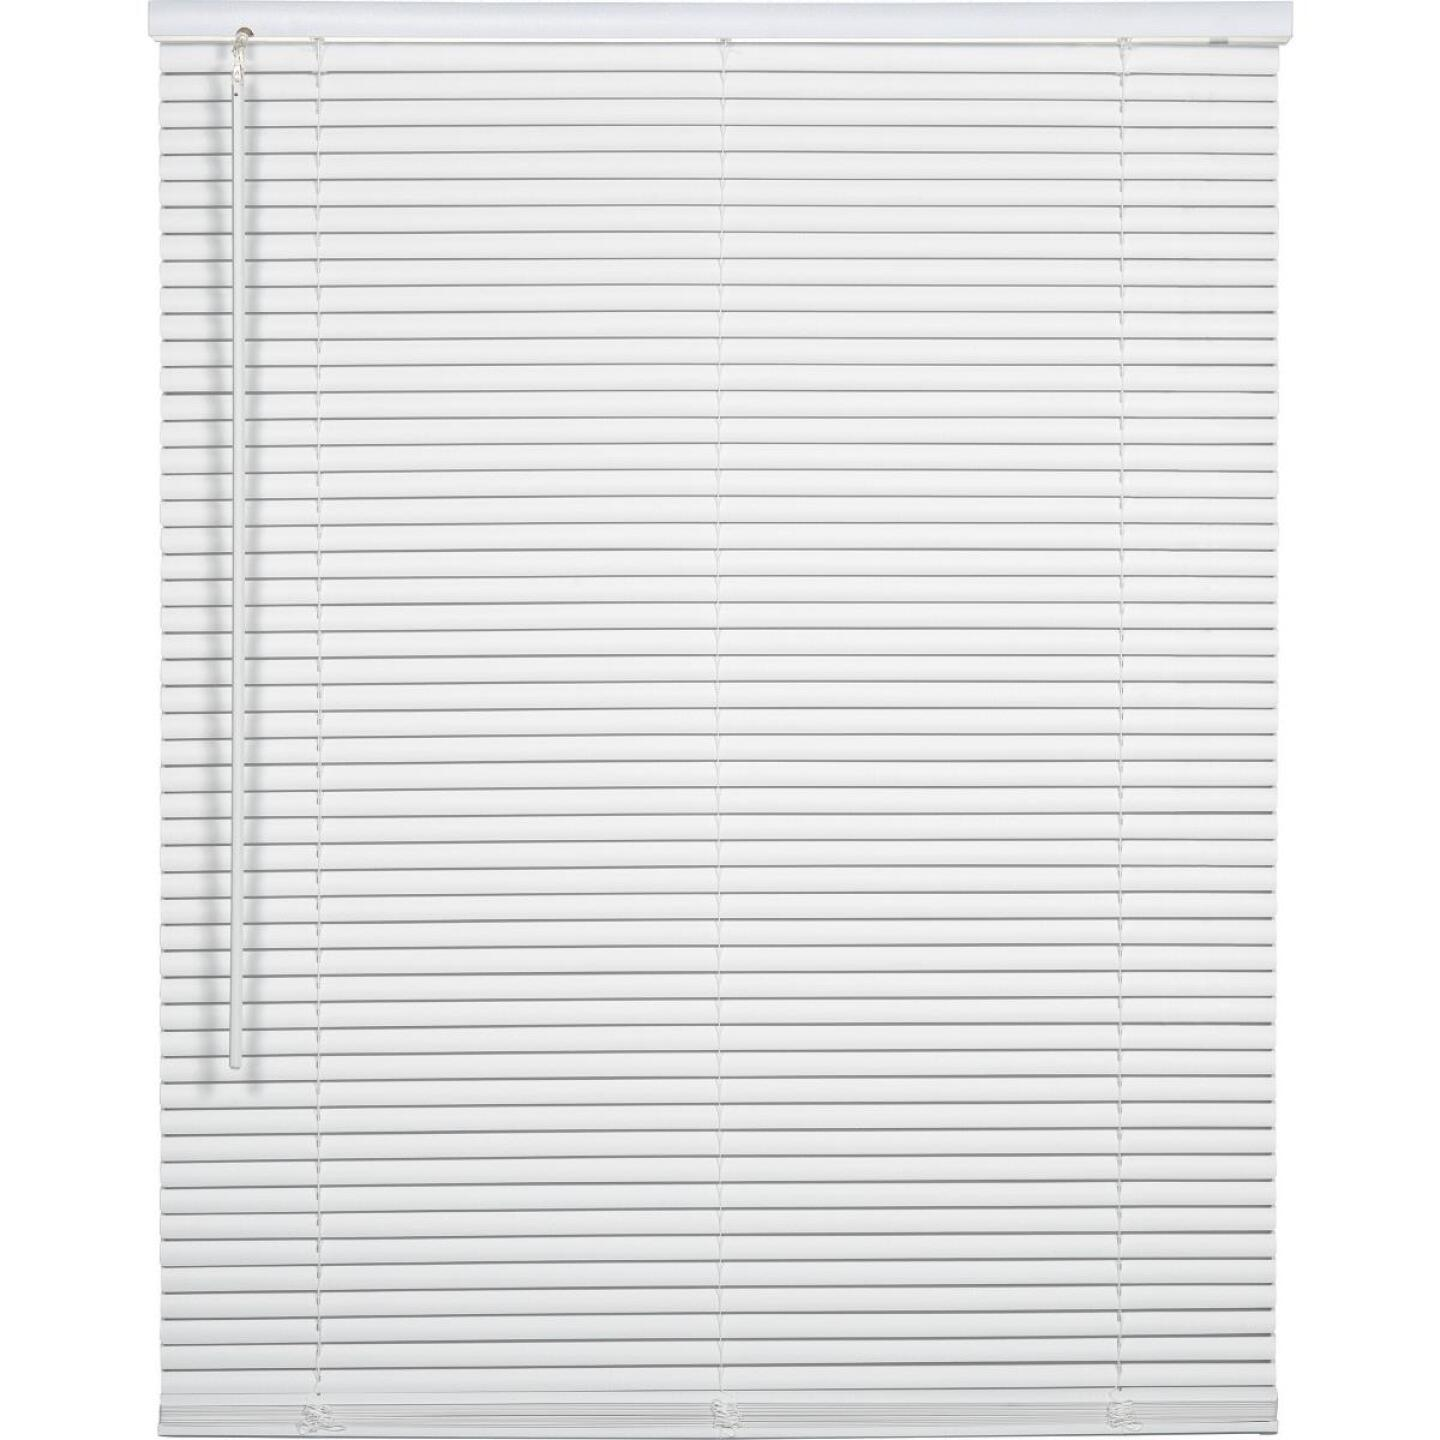 Home Impressions 25 In. x 72 In. x 1 In. White Vinyl Light Filtering Cordless Mini Blind Image 1